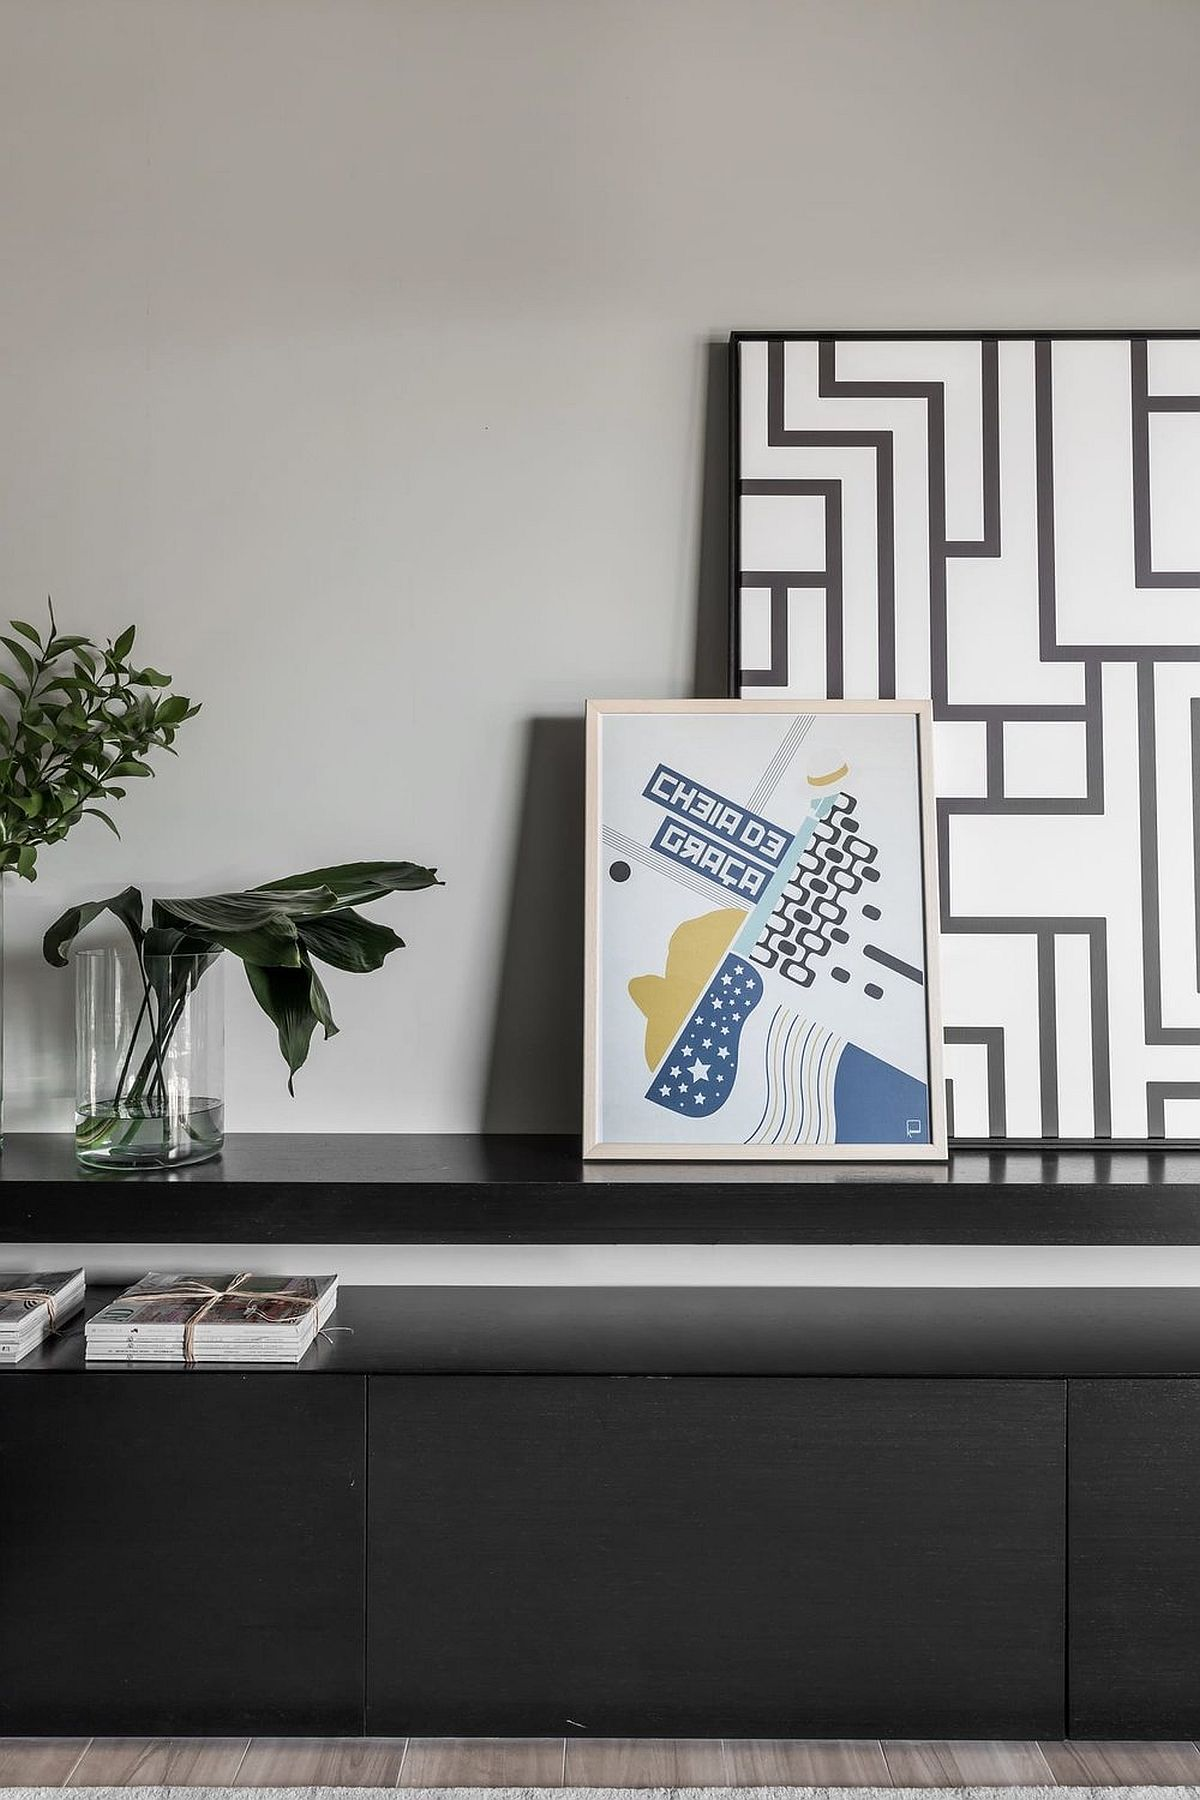 Decorating the living room in a modern casual style with a bit of geo flair